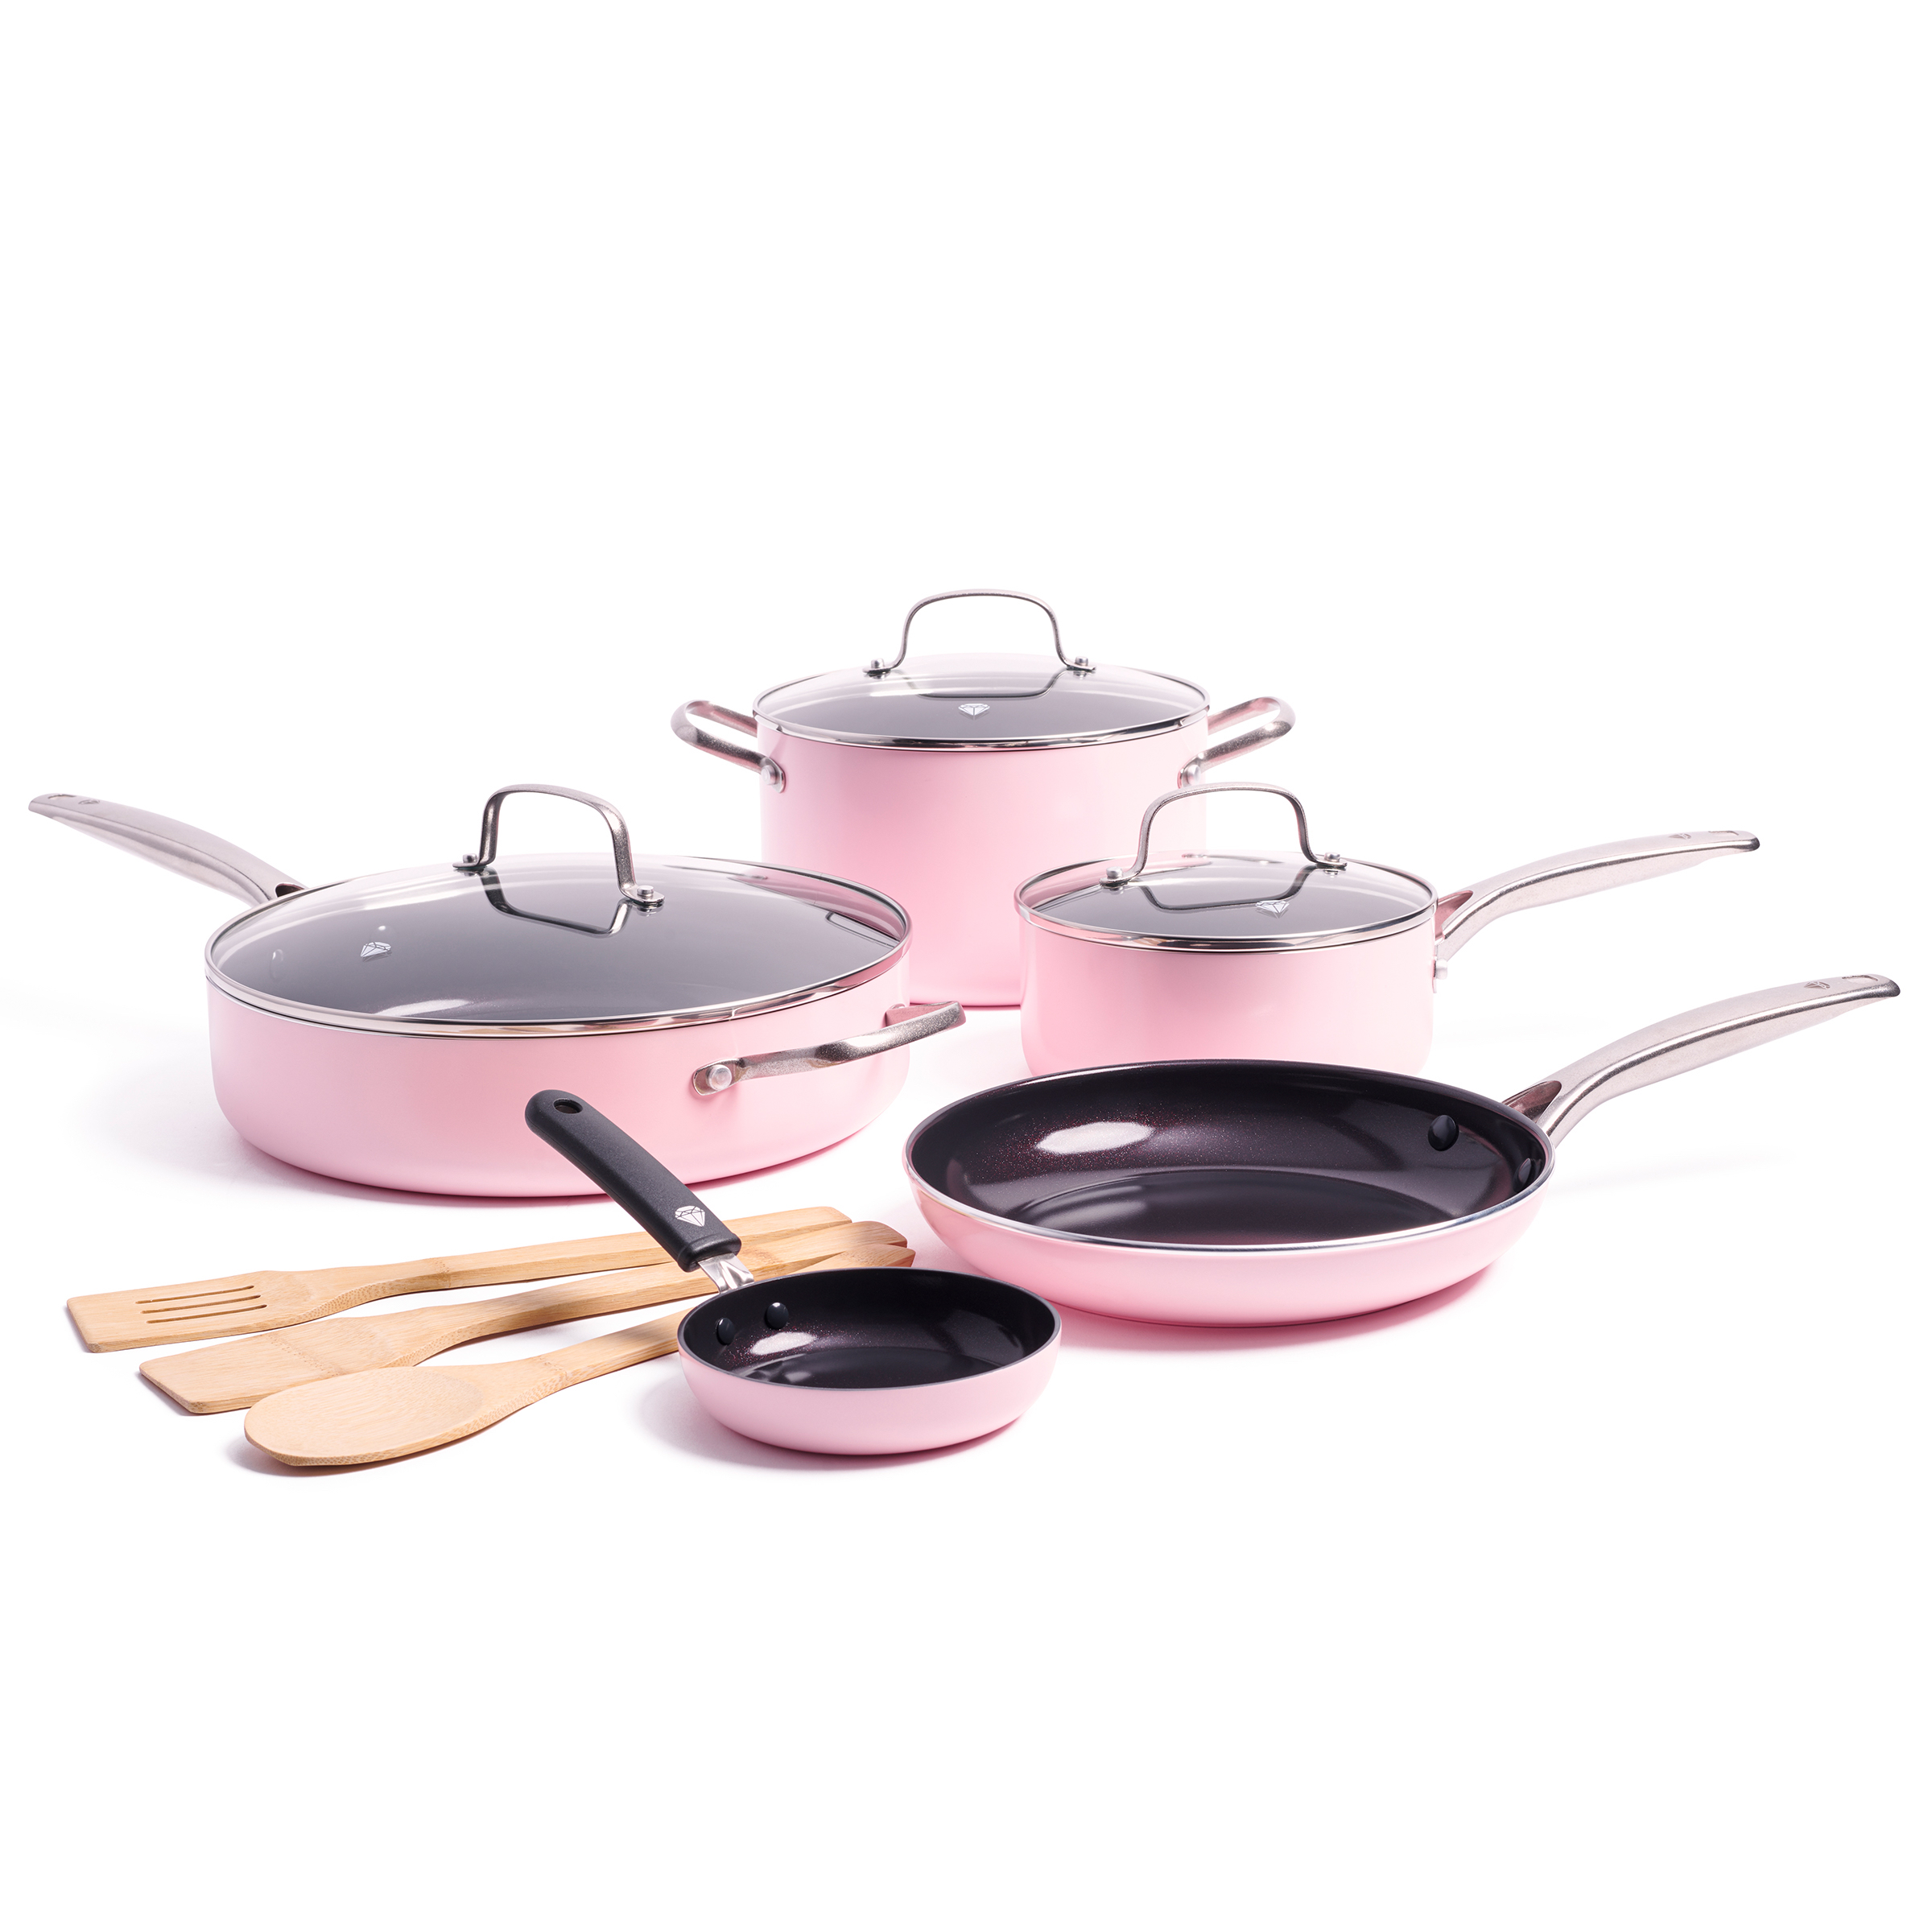 Nonstick 11-Piece Cookware FREE SHIPPING BLUE LIMITED EDITION Blue Diamond